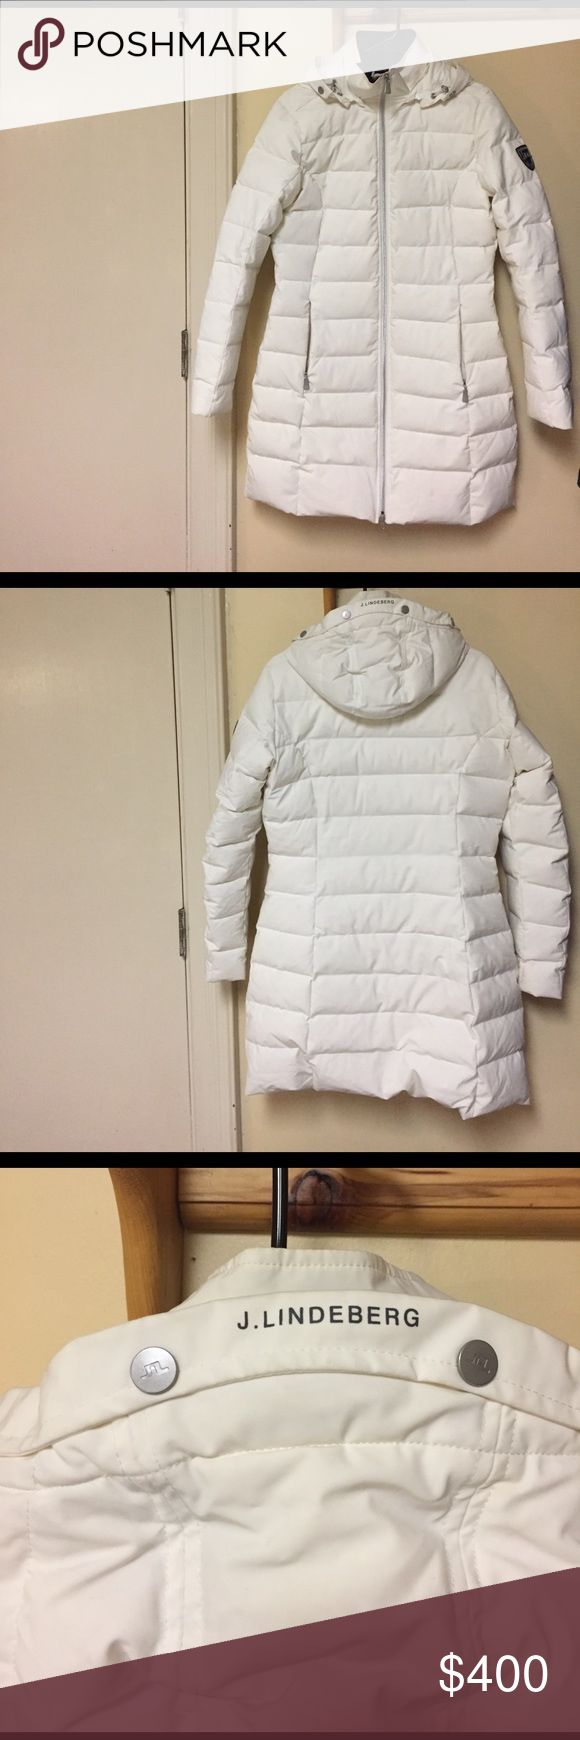 BNWOT women's aspen down J. Lindeberg jacket Perfect condition - like wrapping yourself in a comforter - the warmest jacket possible. Premium down filled, 4 way stretch fabric, super comfortable. White, size medium J. Lindeberg Jackets & Coats Puffers